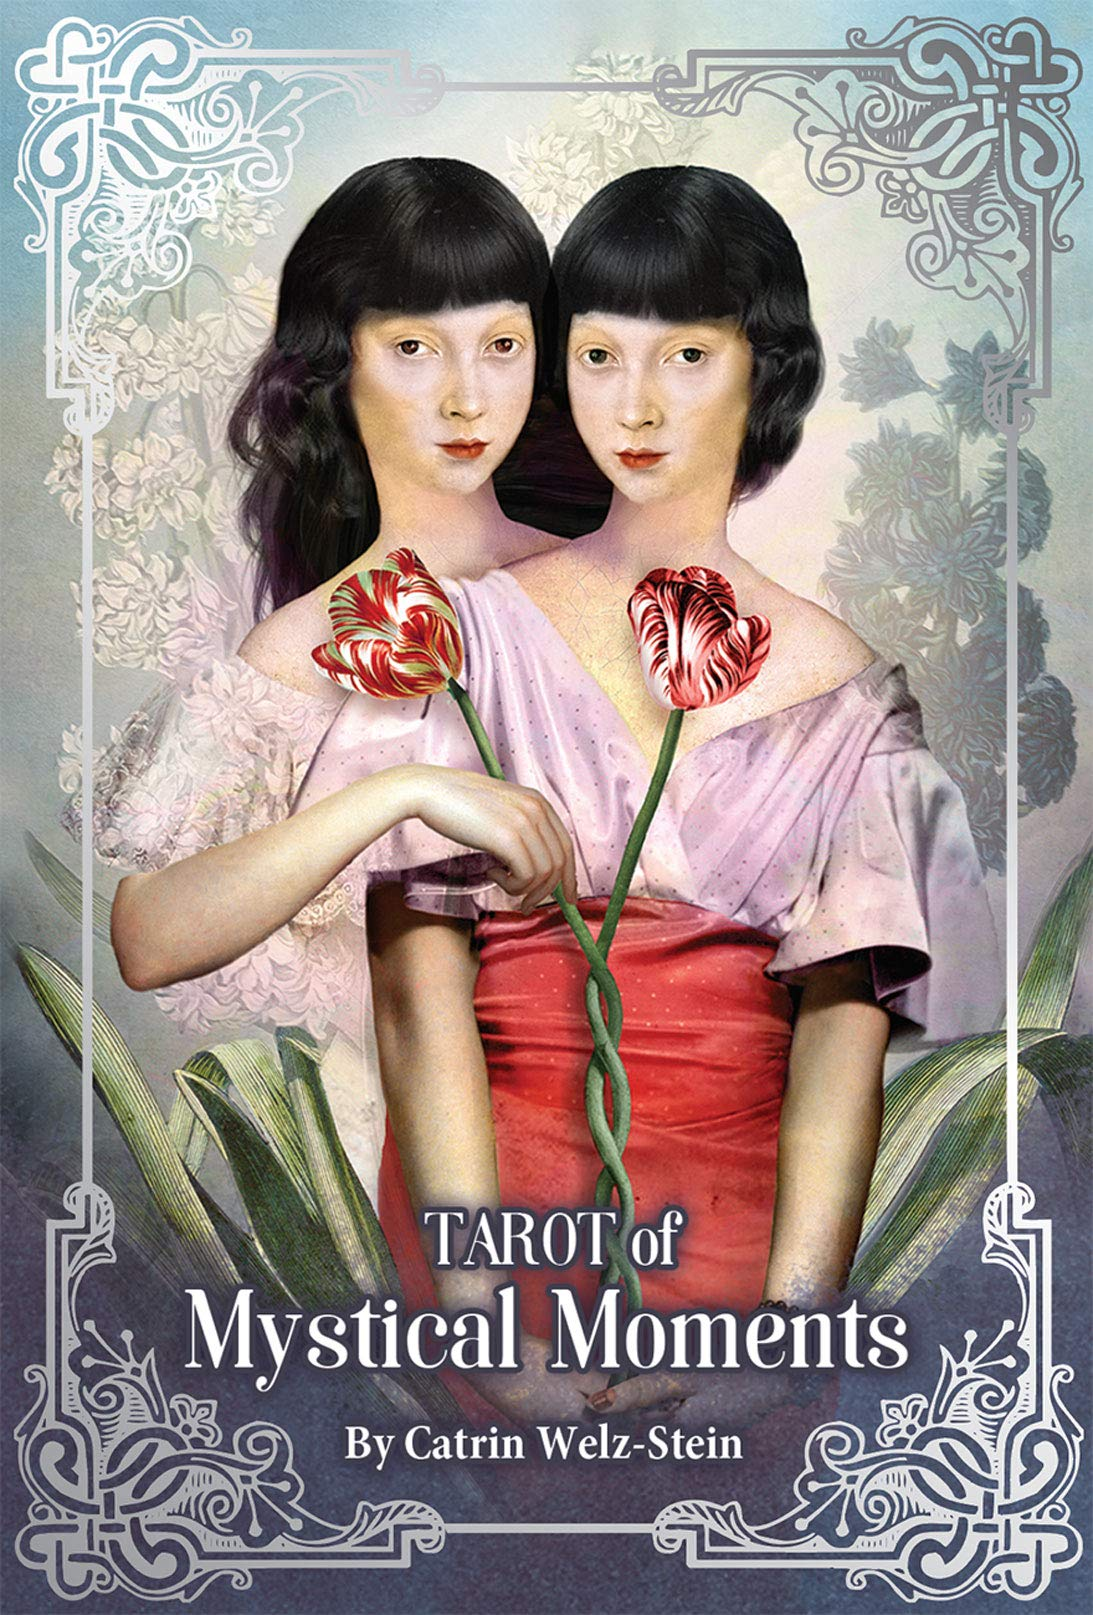 Tarot of Mystical Moments Review